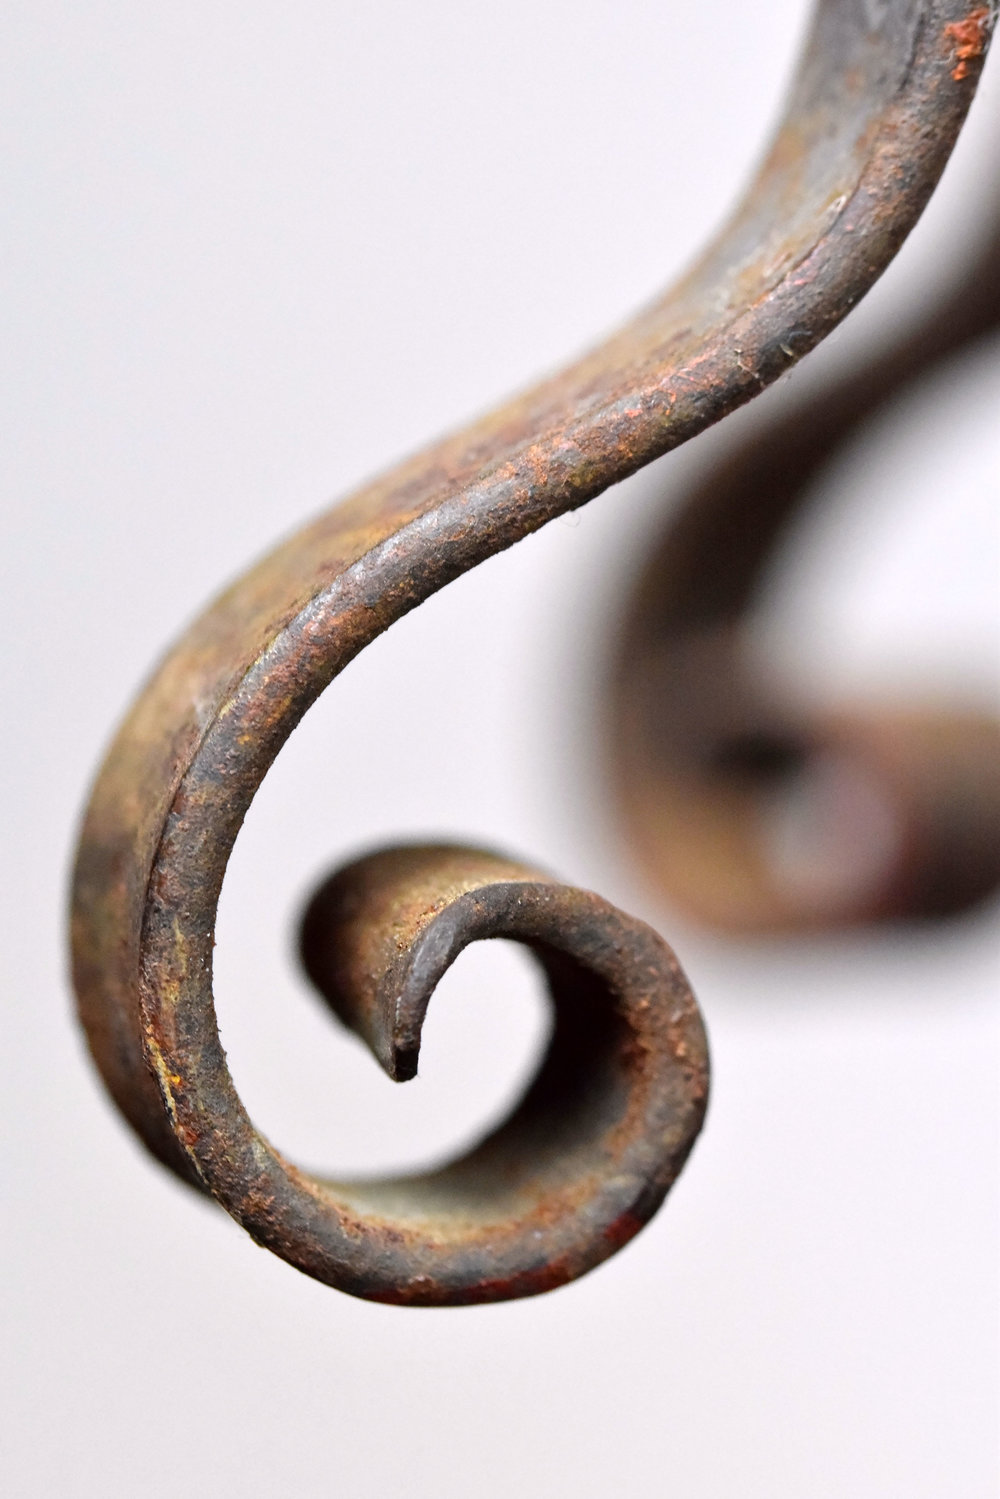 47444-painted-iron-pendant-macro.jpg